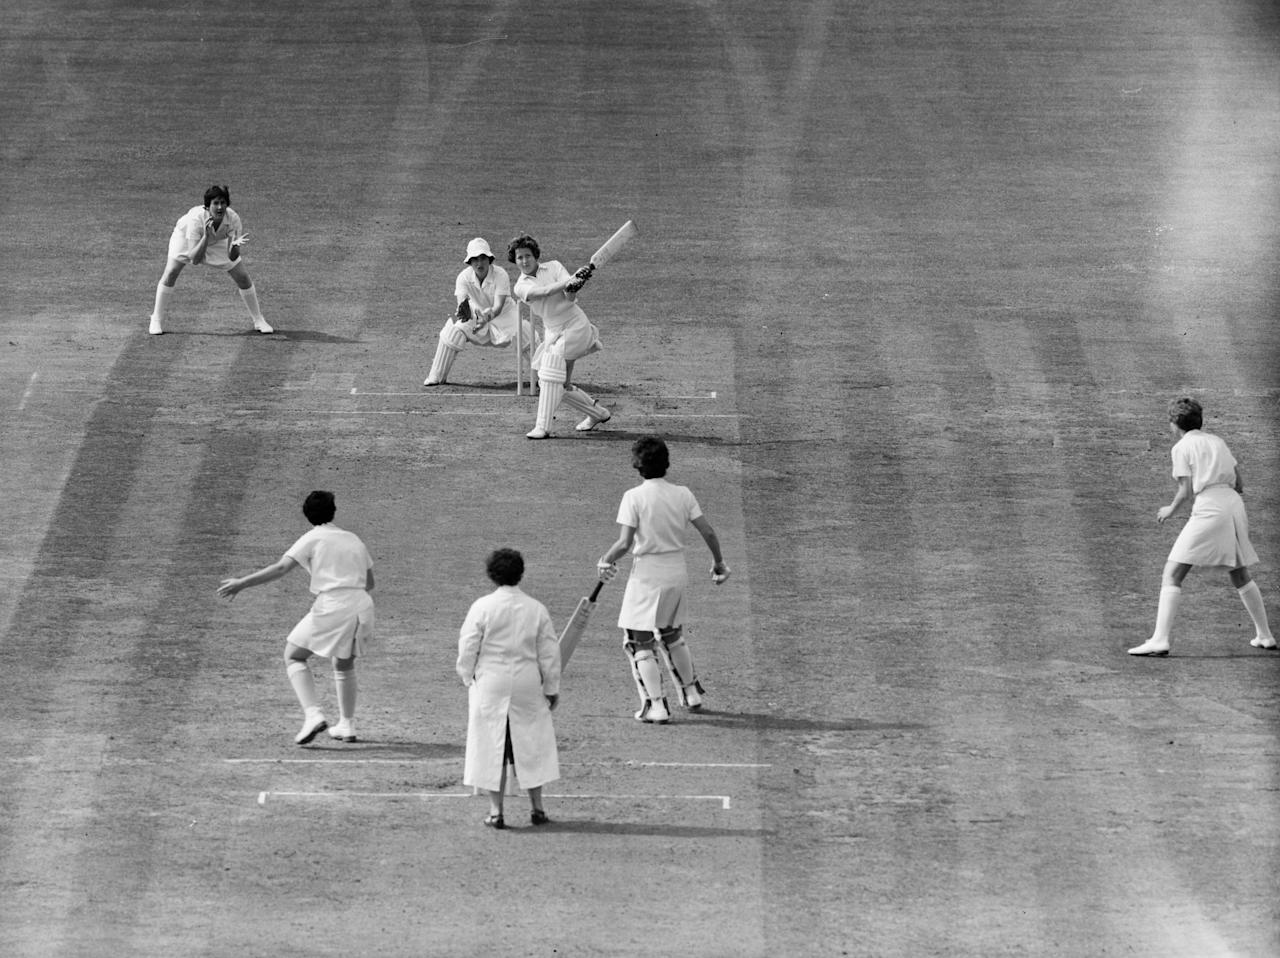 [ICCWWC2013] 20th July 1963:  English cricketer Rachel Heyhoe-Flint hits Australian M Knee to the boundary during England's first innings against Australia in the Women's Cricket Test match at the Oval in London.  (Photo by Central Press/Getty Images)